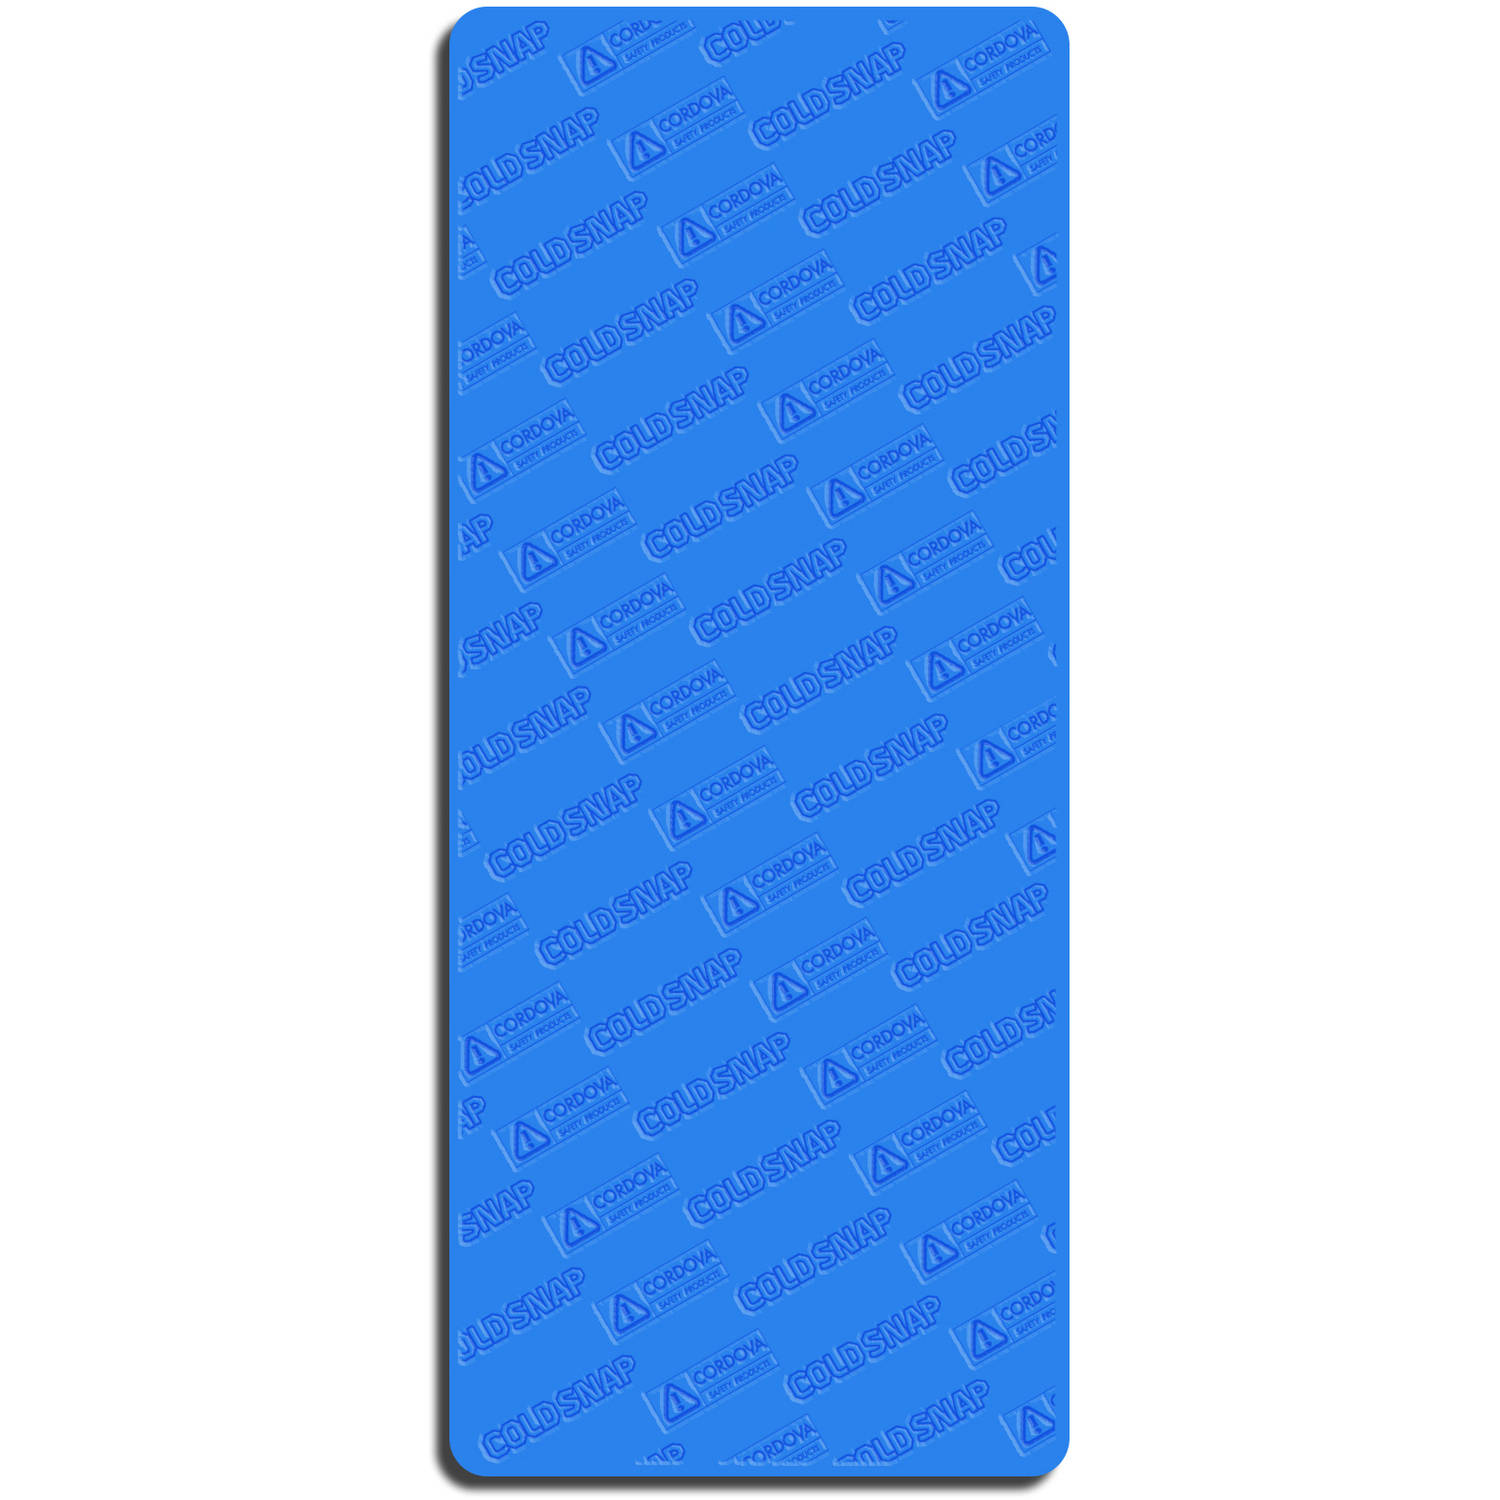 Gym Towel or Active Towel Perfect Swim Towel Snap Button Shammy Absorbent and Soft PVA AQUASNAP Quick Dry Towel//Cooling Towel Turquoise